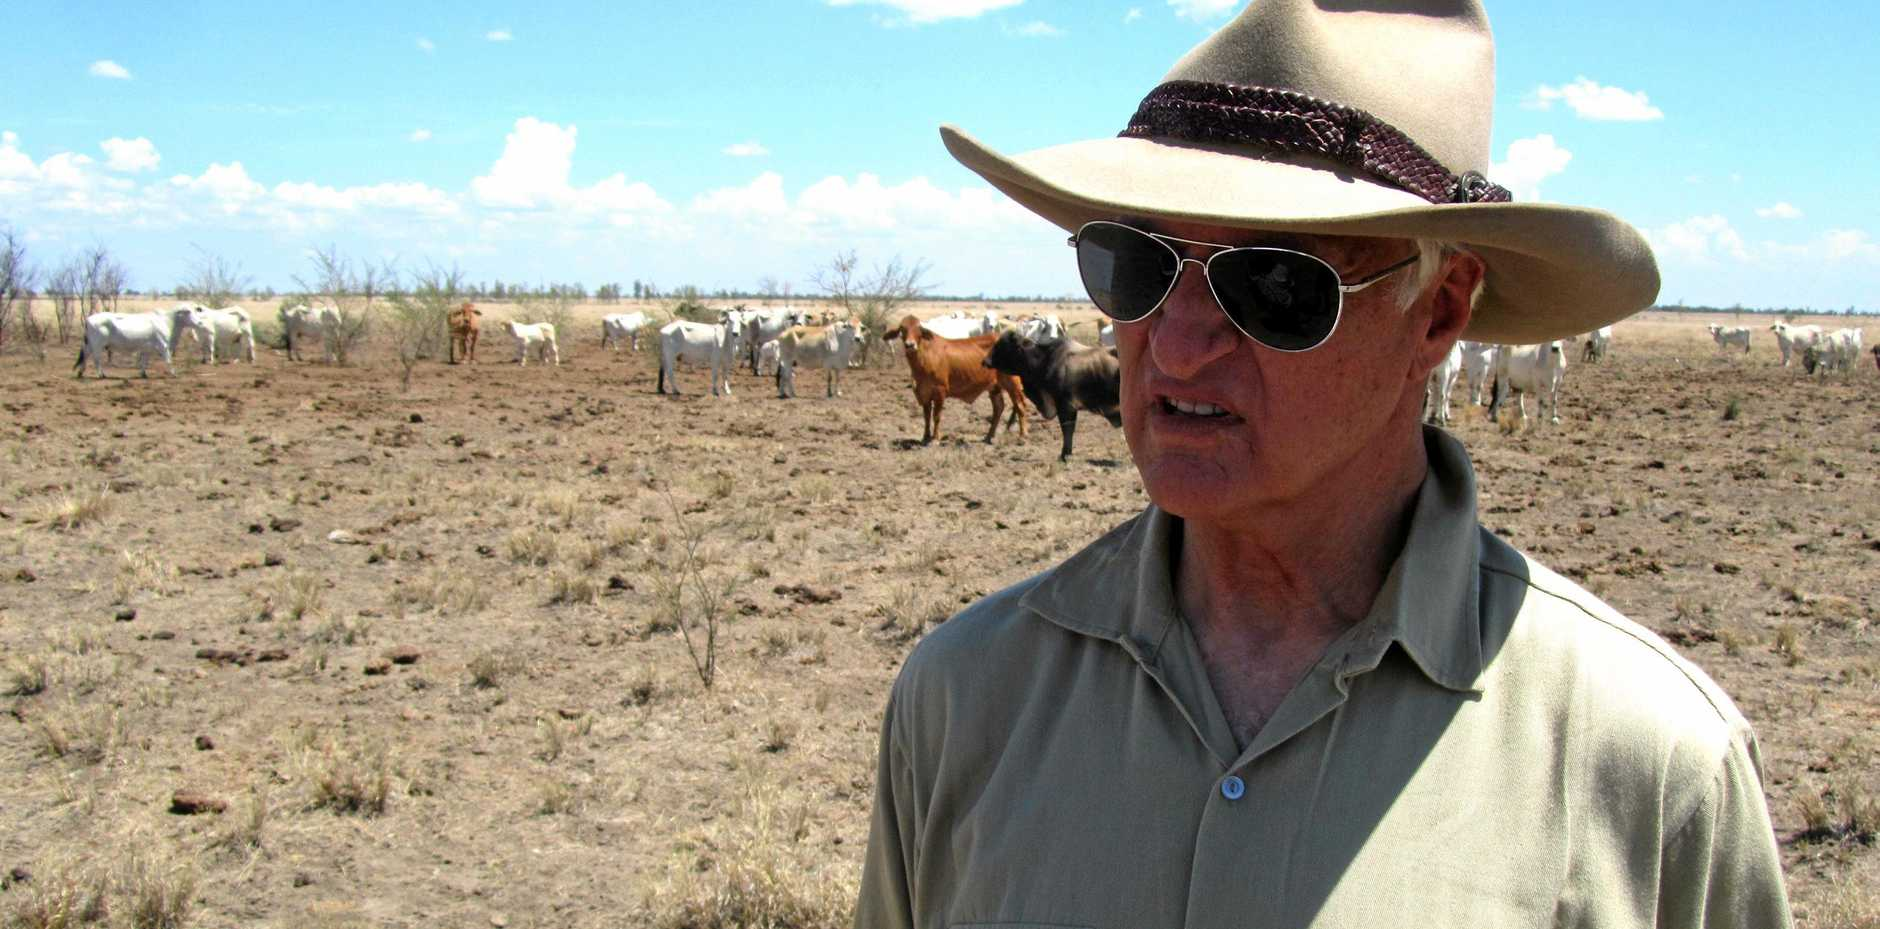 NO SALE: Federal Member for Mount Isa Bob Katter says he finds the sale of Australian agricultural assets like Cubbie Station